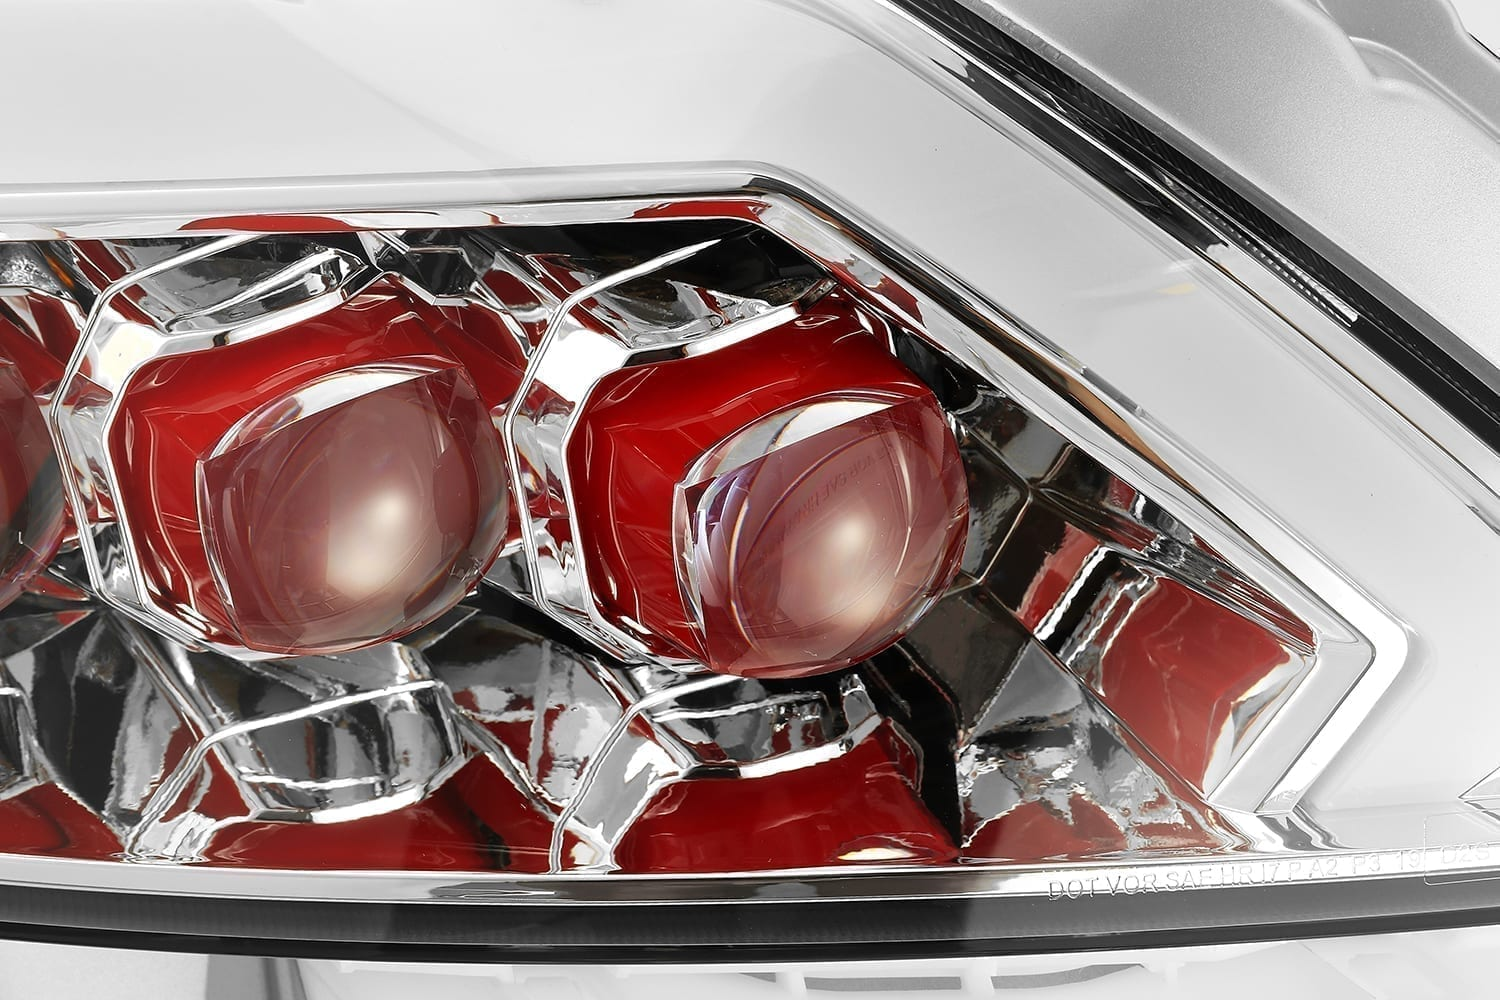 2008 2009 2010 2011 2012 2013 2014 2015 Infiniti G37 Q60 Red NOVA Full LED Projector Headlights